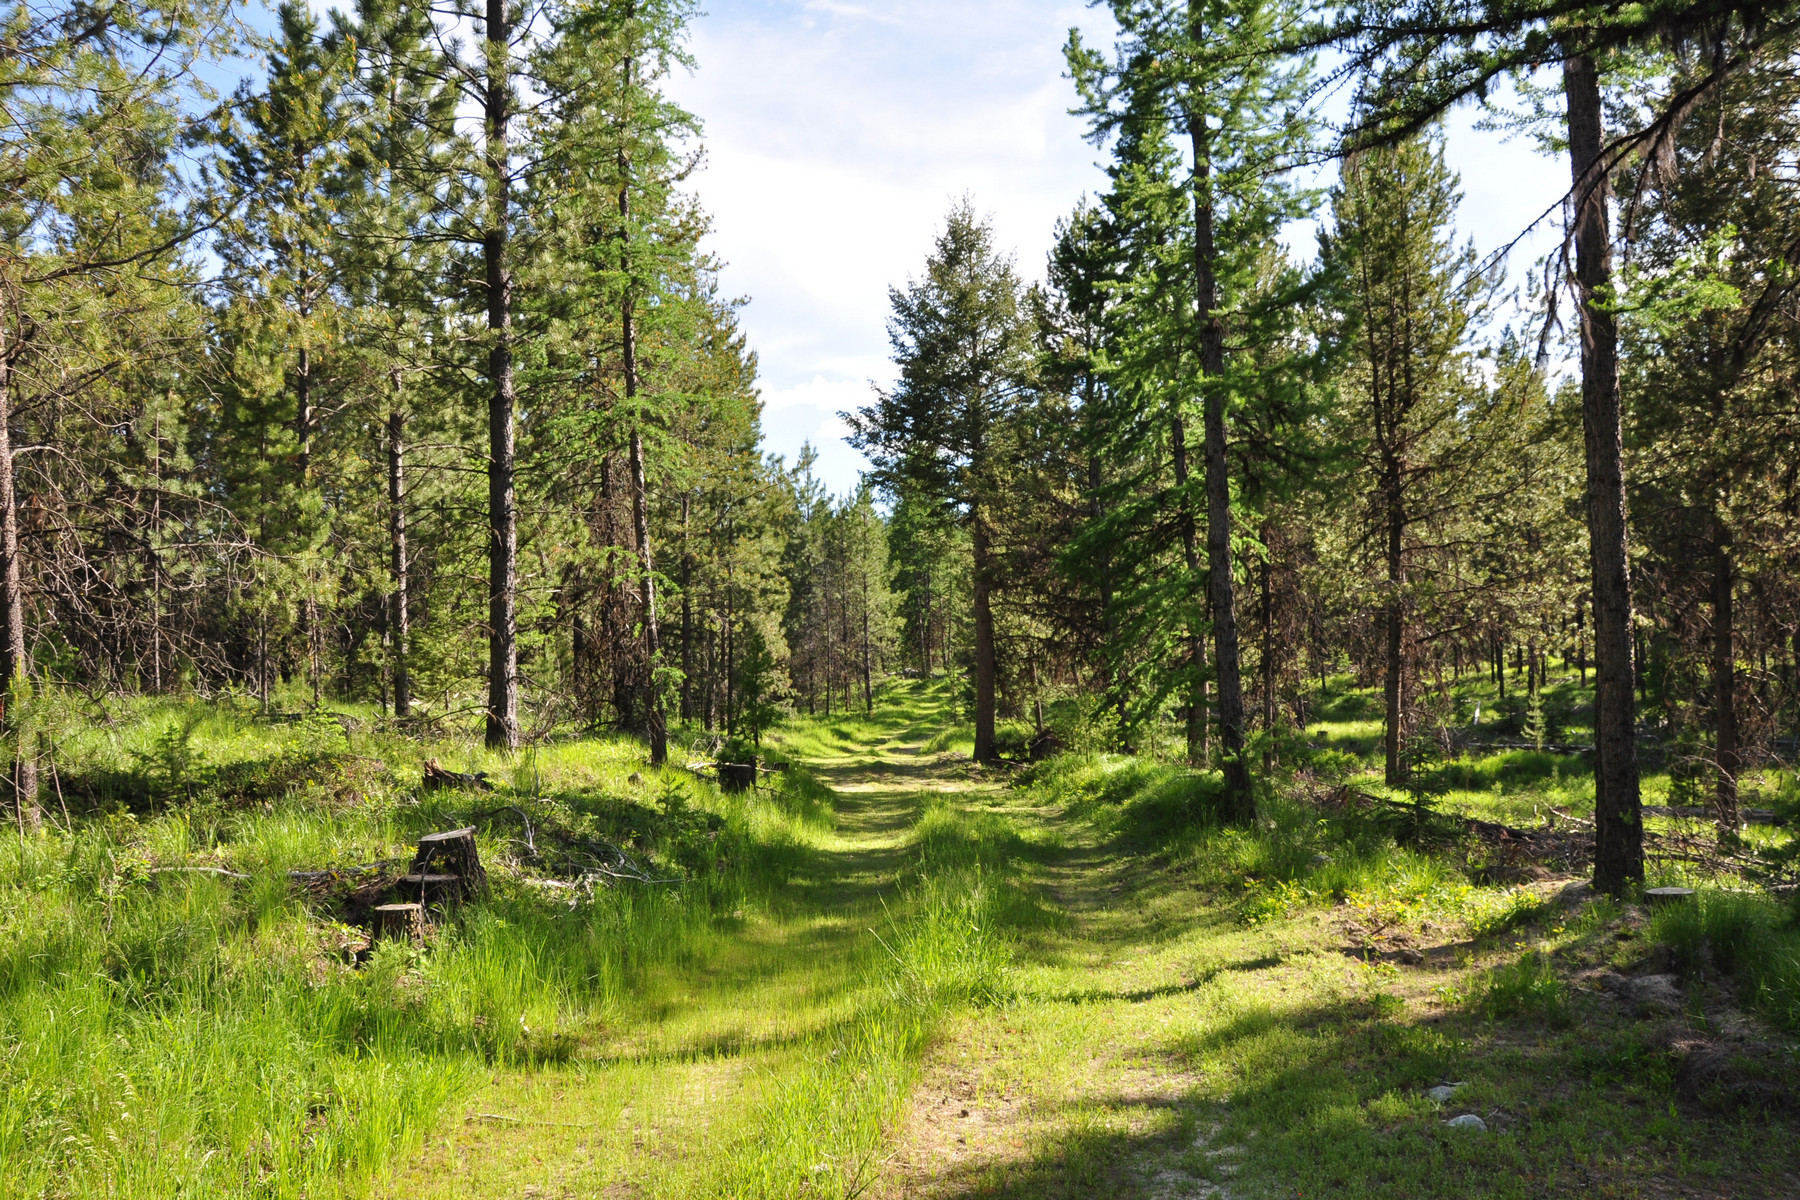 Land for Sale at Nhn Hockaday Lane , Oxen TR 3 Marion, Montana 59925 United States